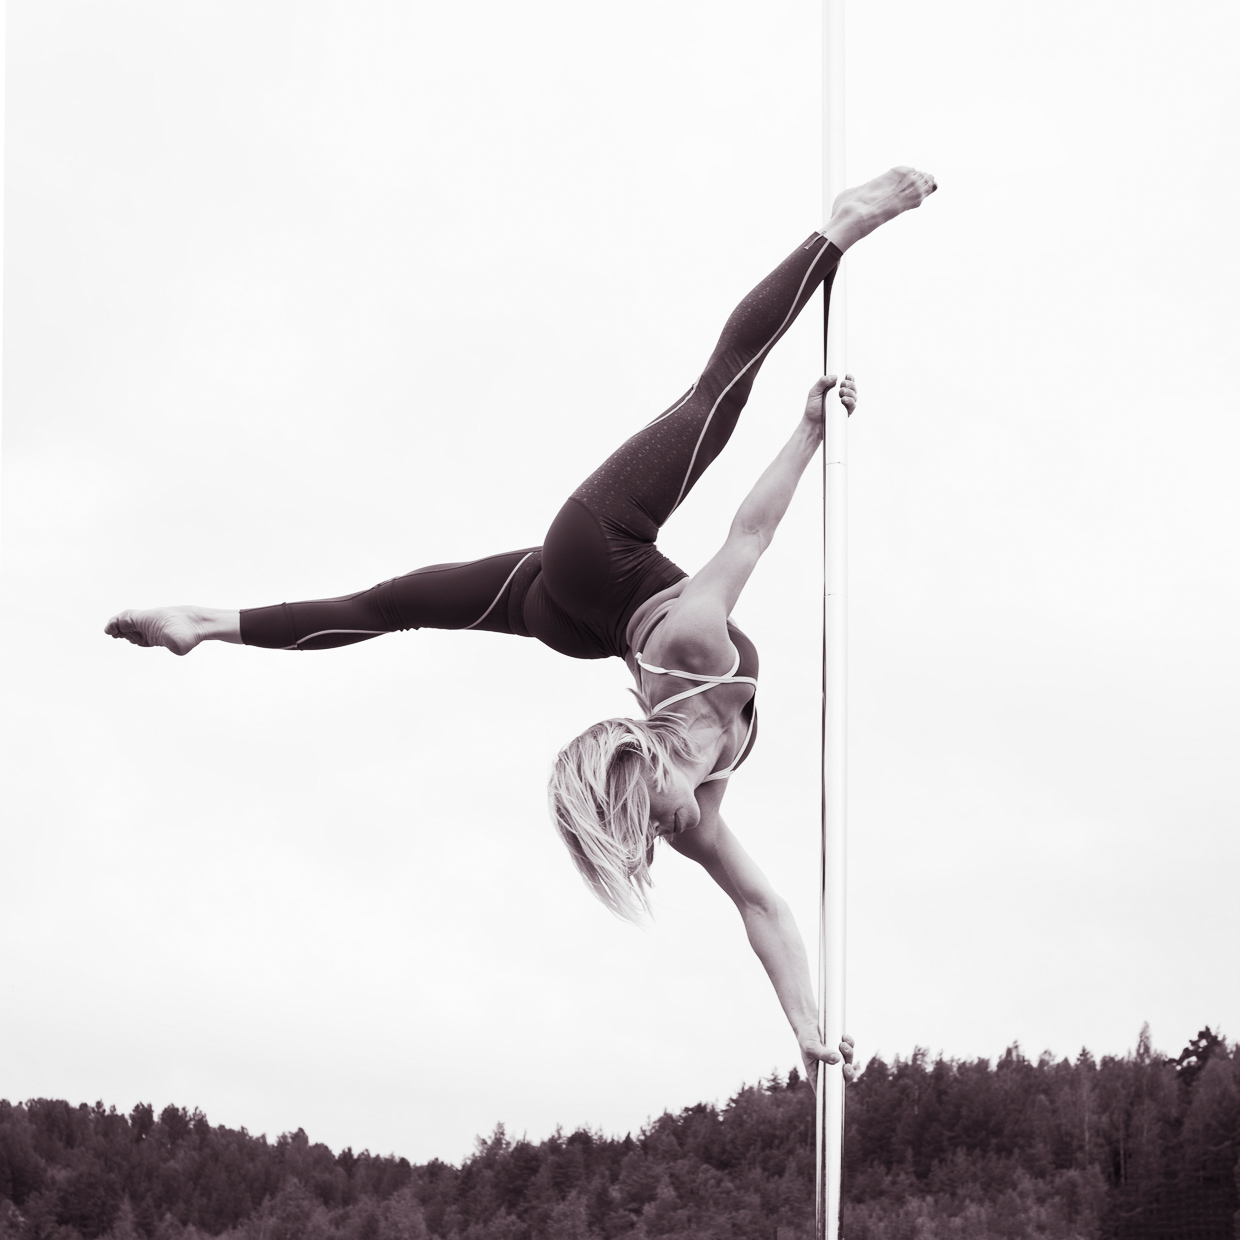 Therese Larsson doing an extended butterfly on the pole dancing pole.